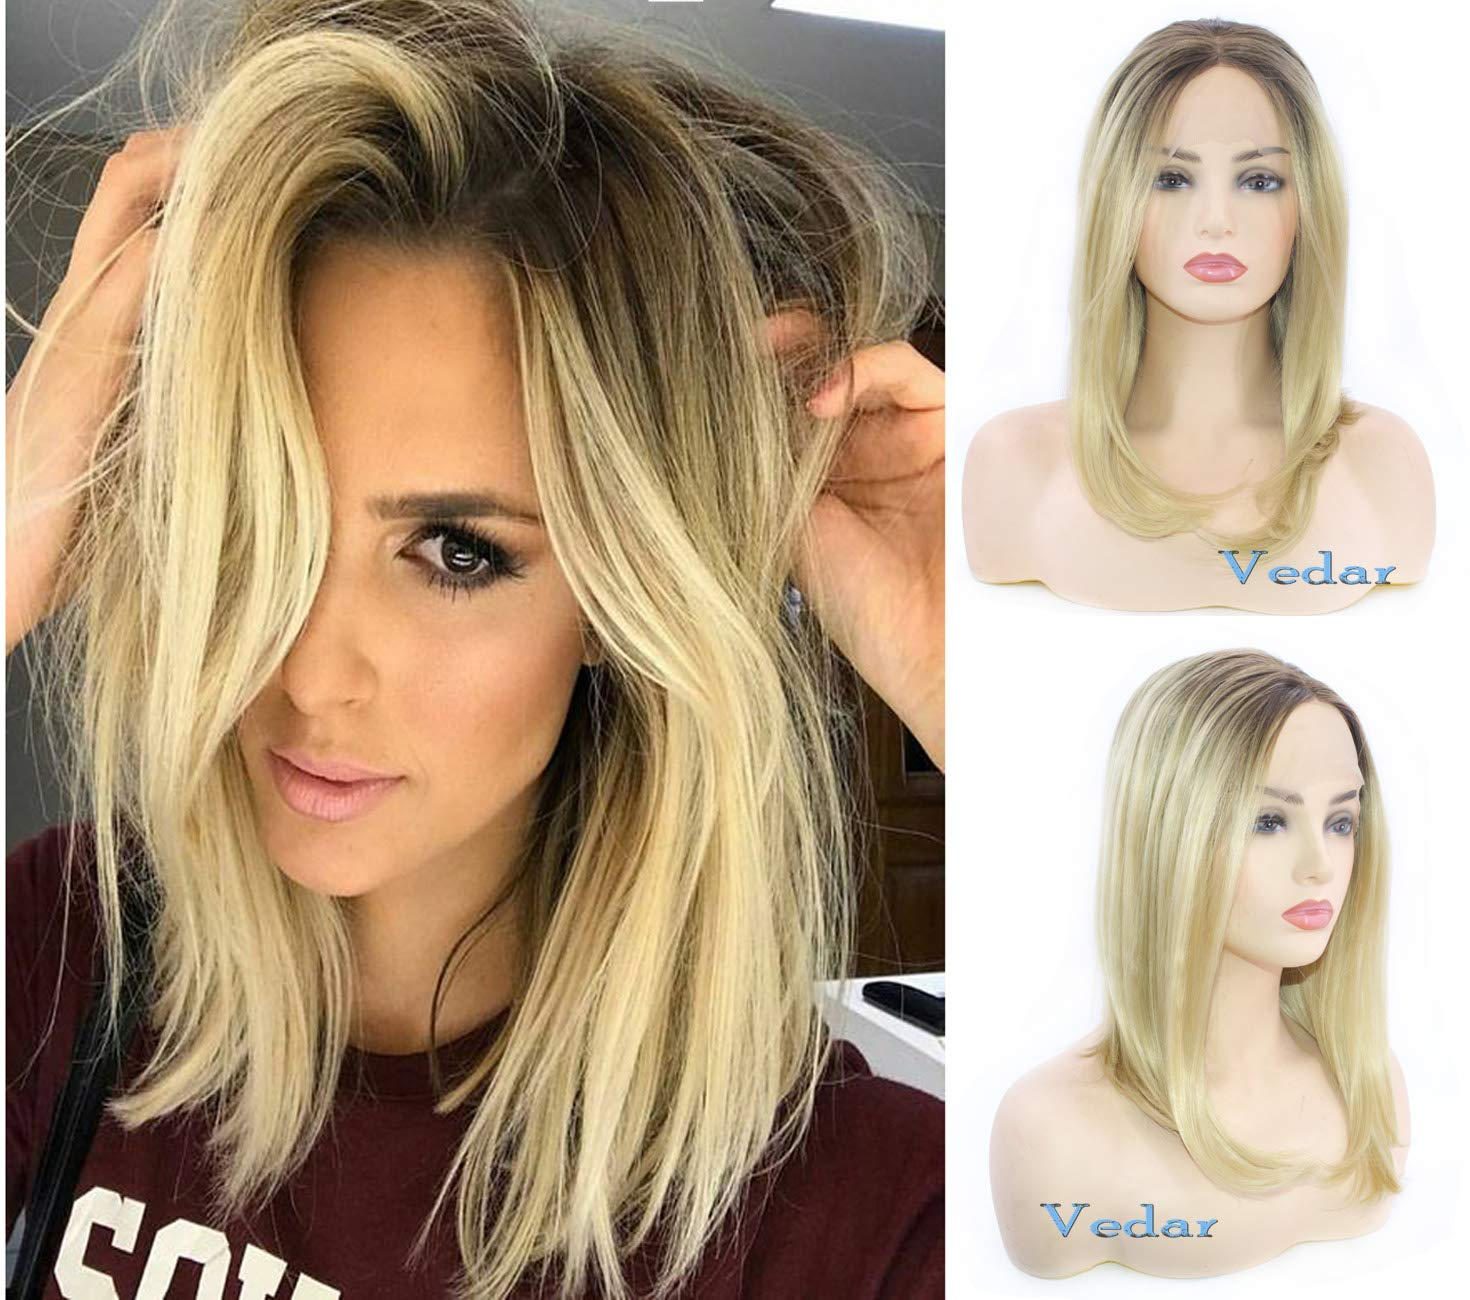 Vedar 2019 Hollywood Celebrity Wigs for Women Middle Part Light Blonde Lace  Front Wigs with Brown Roots Ombre Short Bob Wigs Glueless Synthetic Blonde